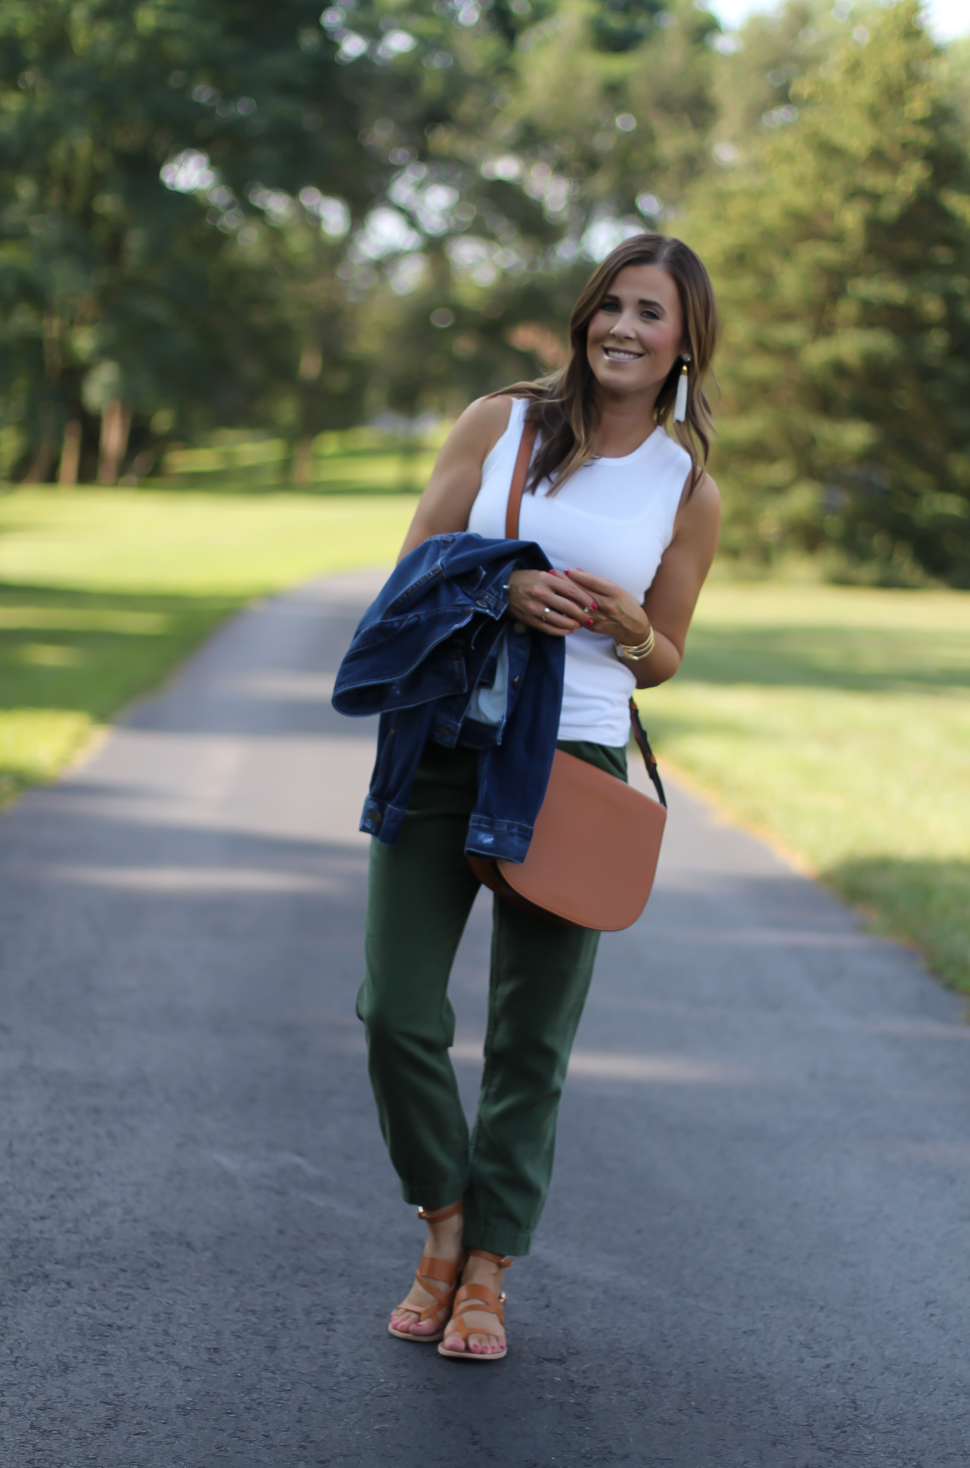 Army Green Joggers, White Sleeveless Shell Tee, Gladiator Sandals, Saddle Bag, J.Crew, tory Burch, Ancient Gladiator 6